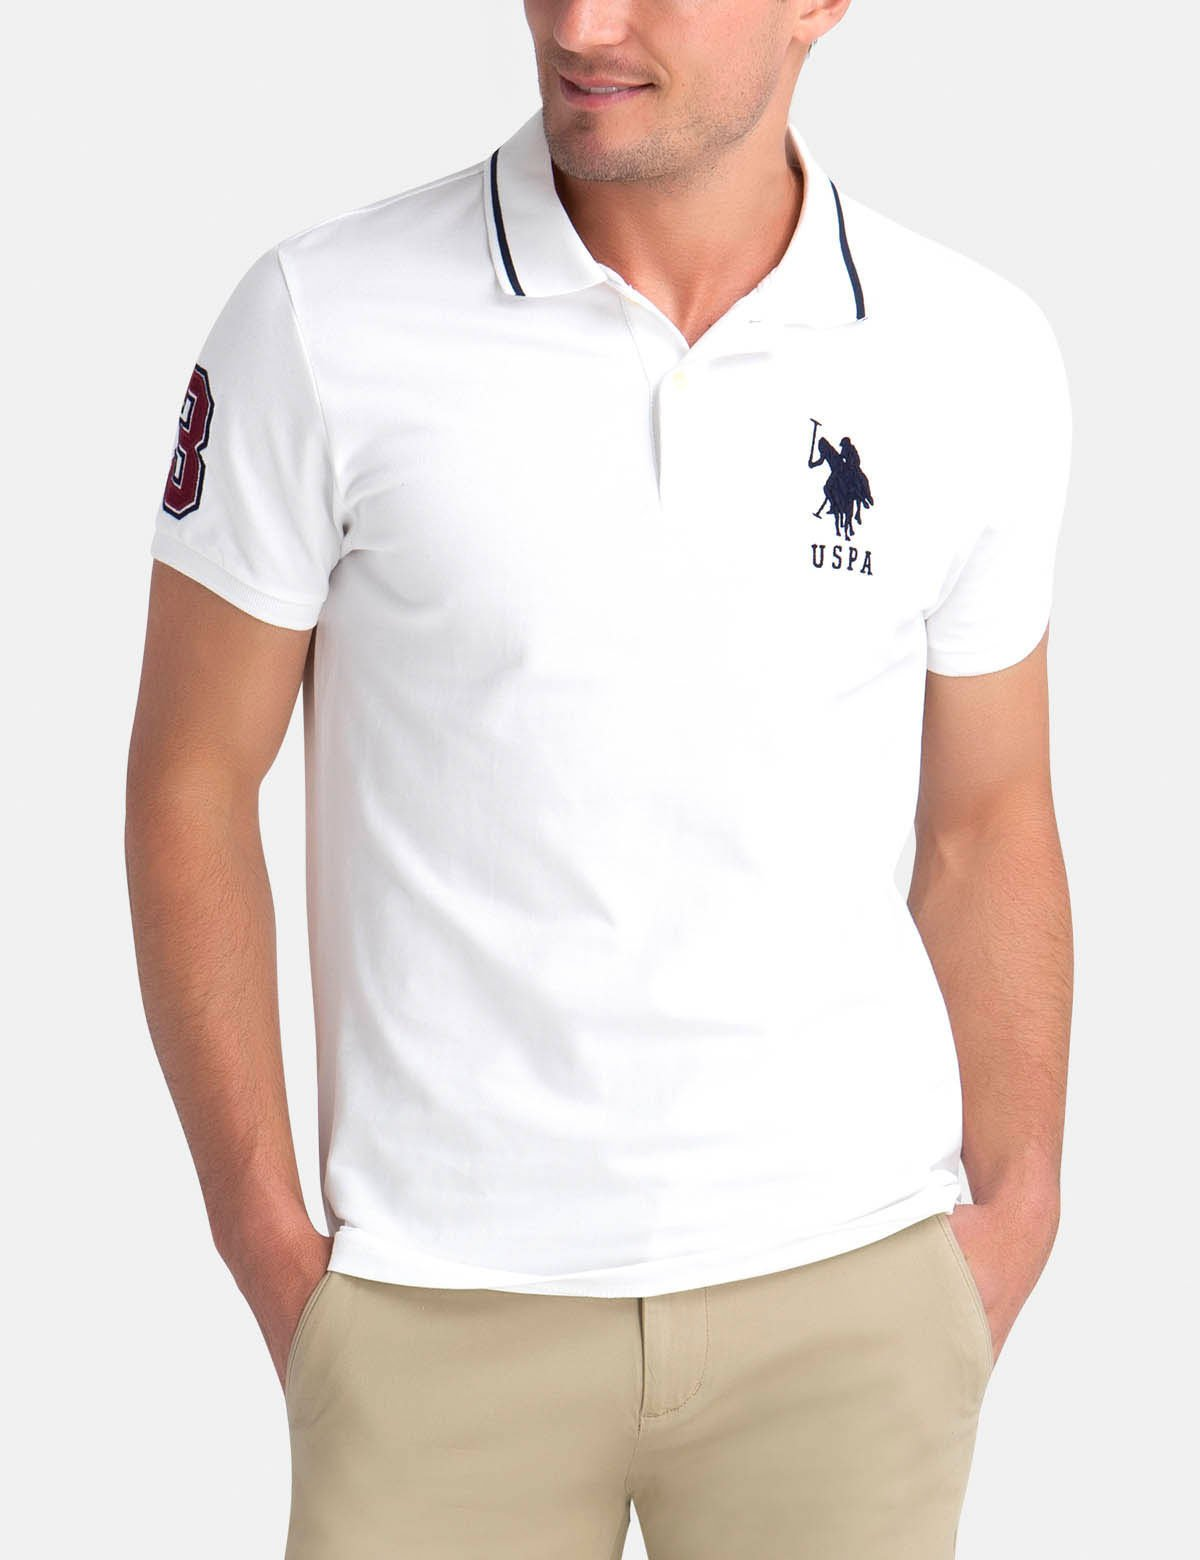 SLIM FIT BIG LOGO POLO SHIRT.